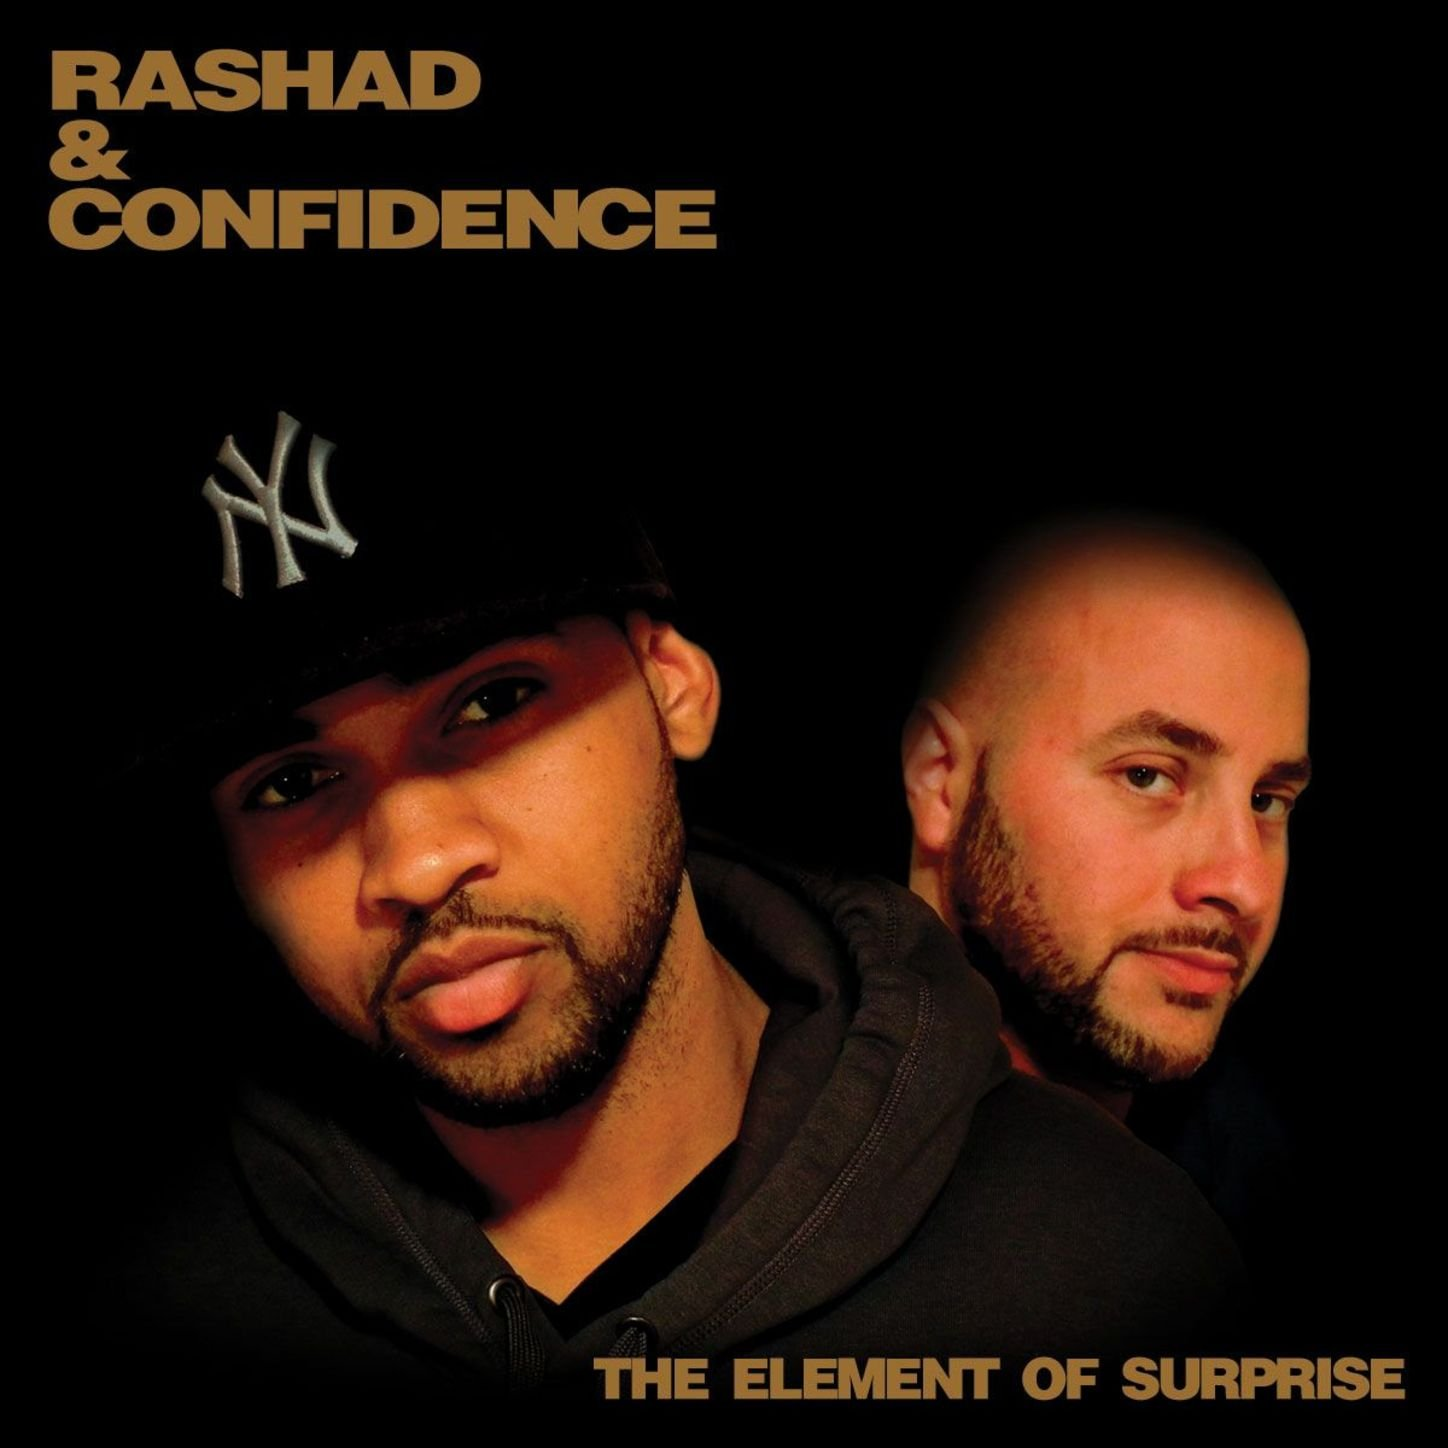 Rashad & Confidence - The Element Of Surprise (2011) [FLAC] Download